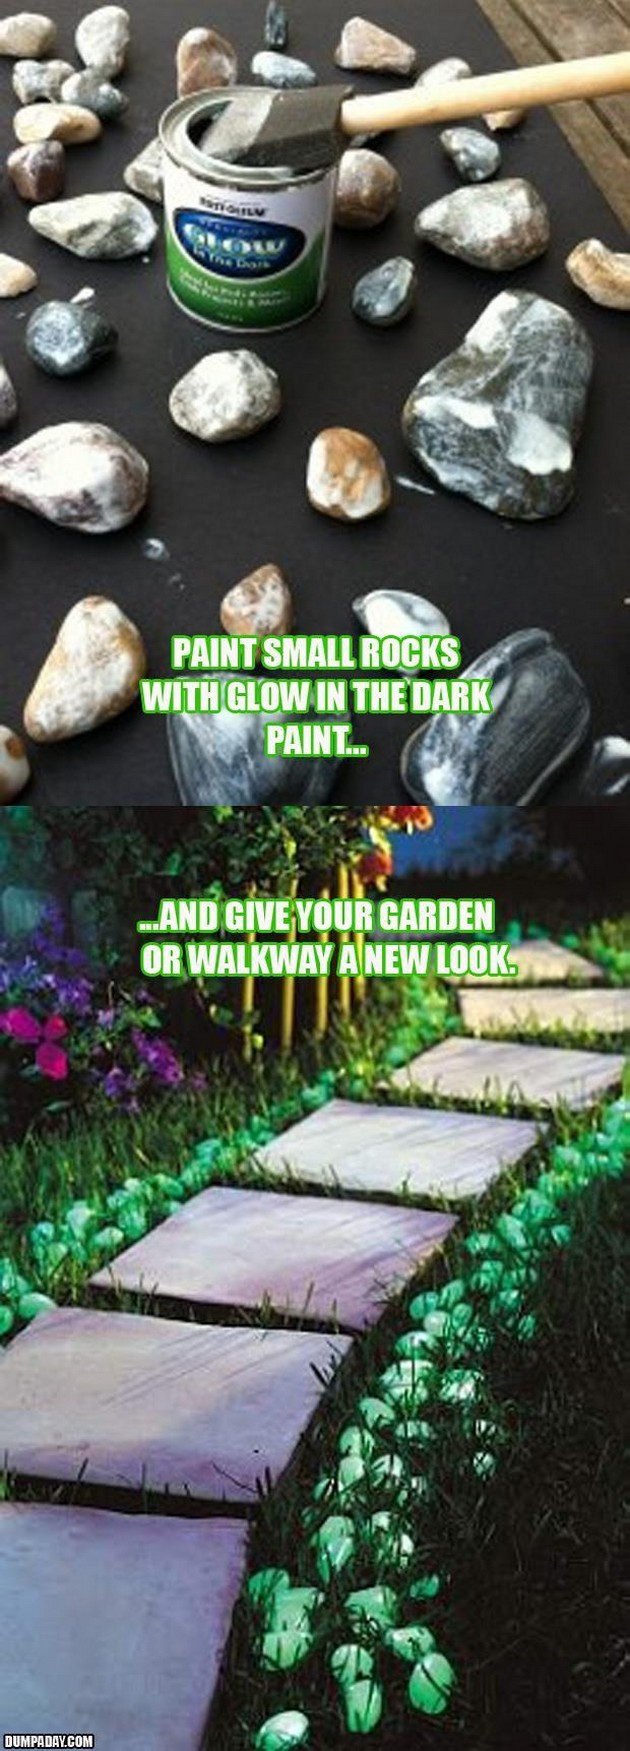 26 Fabulous Garden Decorating Ideas with Rocks and Stones ... on Rock Decorating Ideas  id=38411